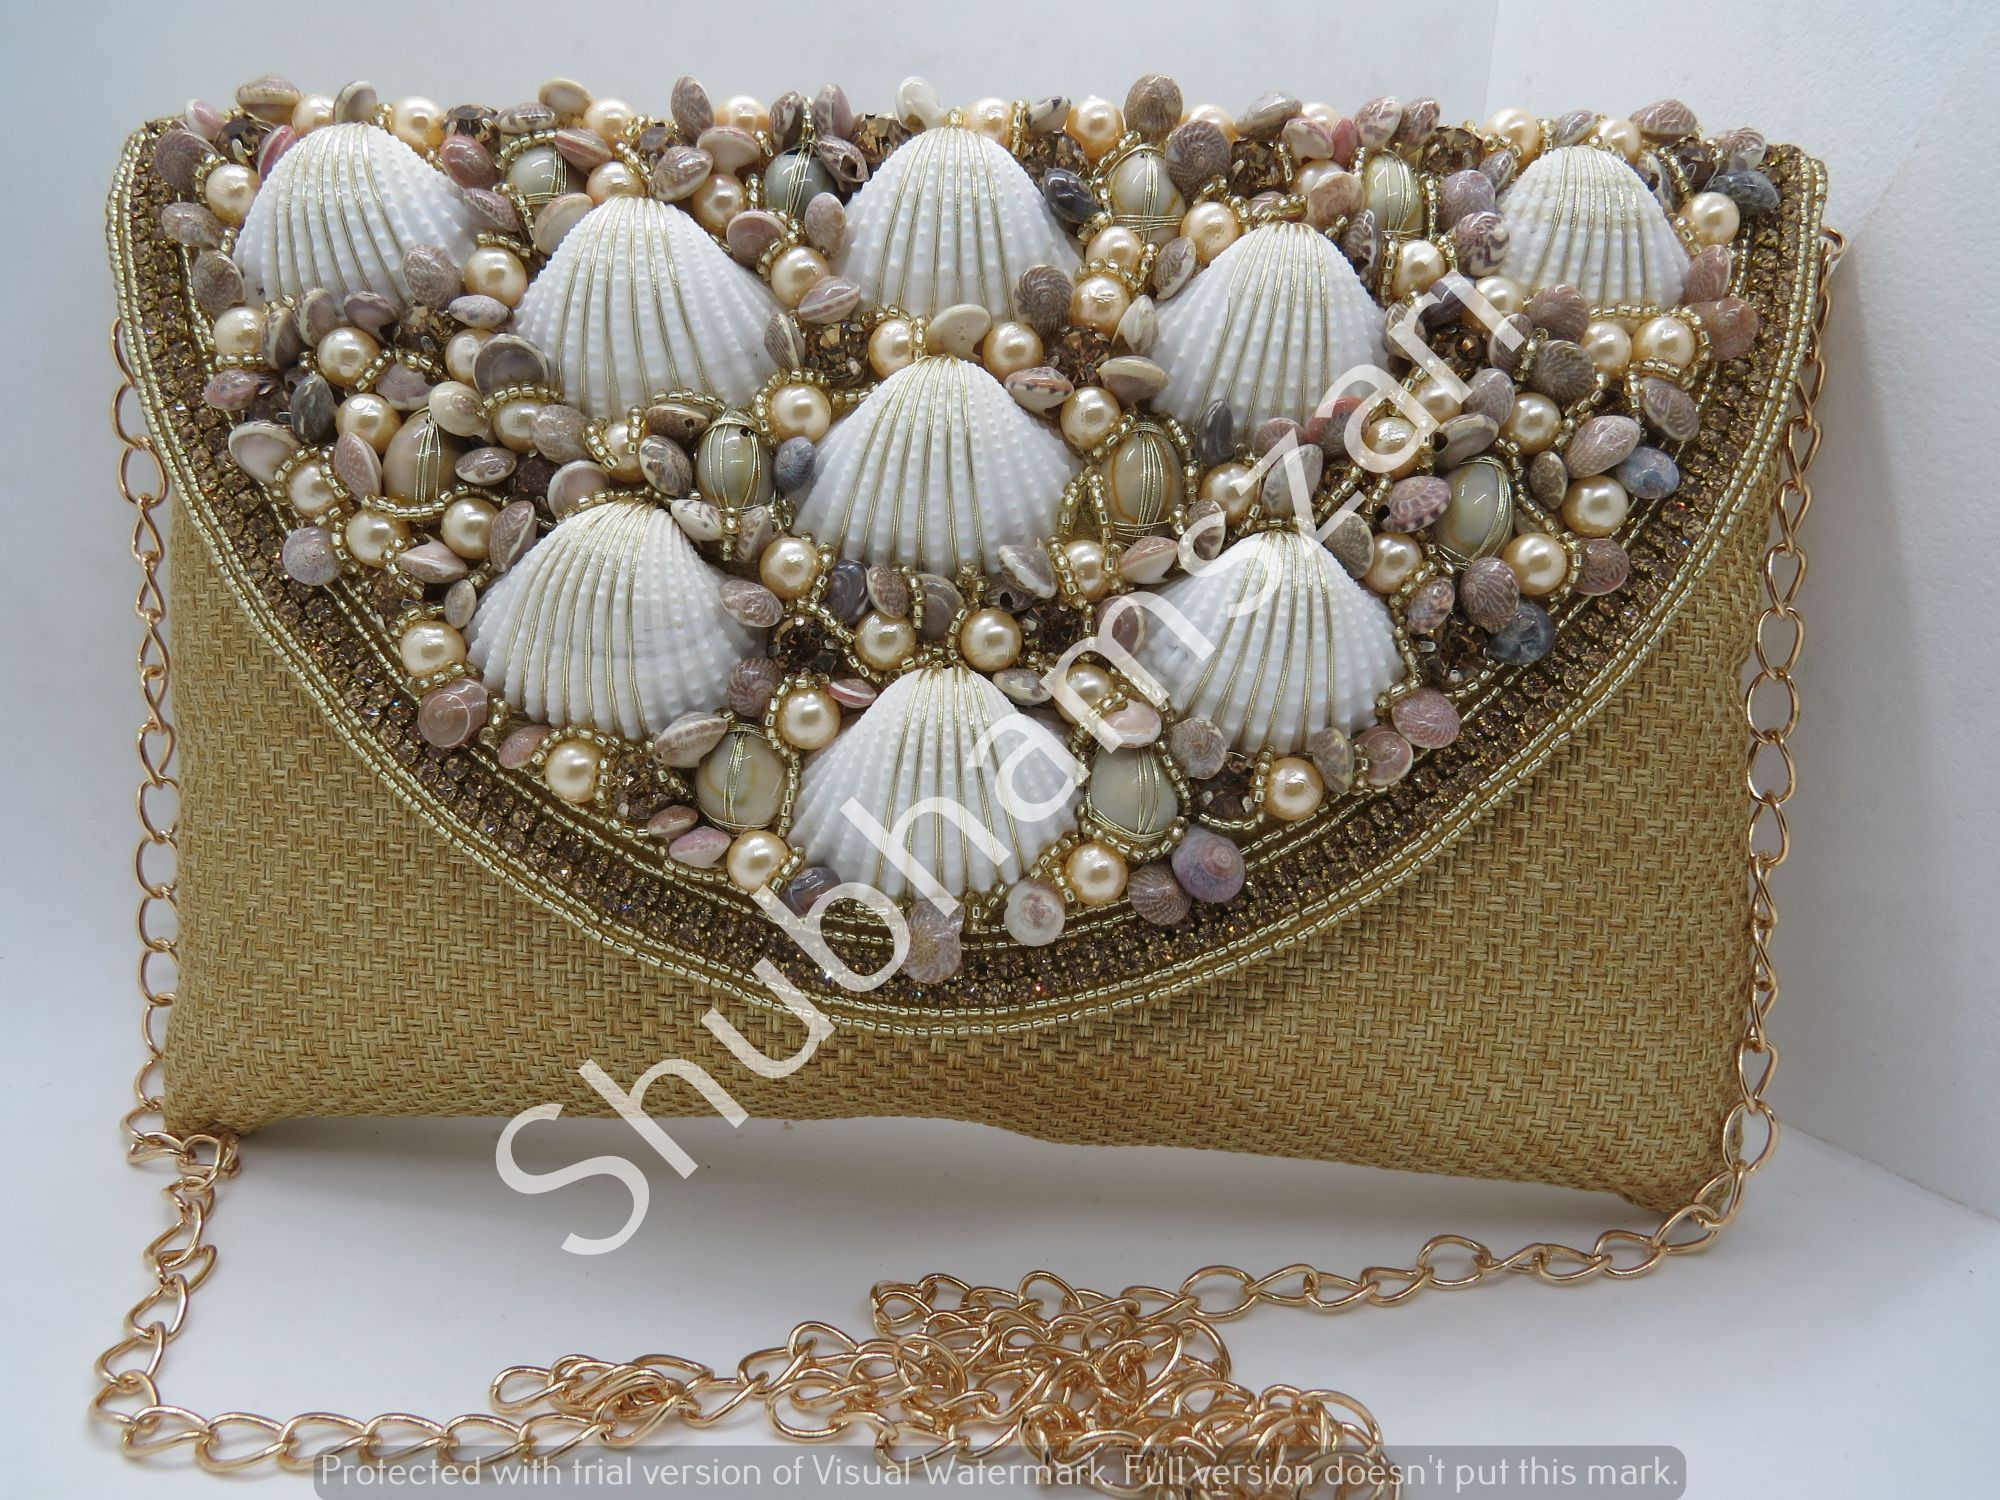 Off White hand embroidery,Handmade shell Clutch, party wedding handbag clutch Sling